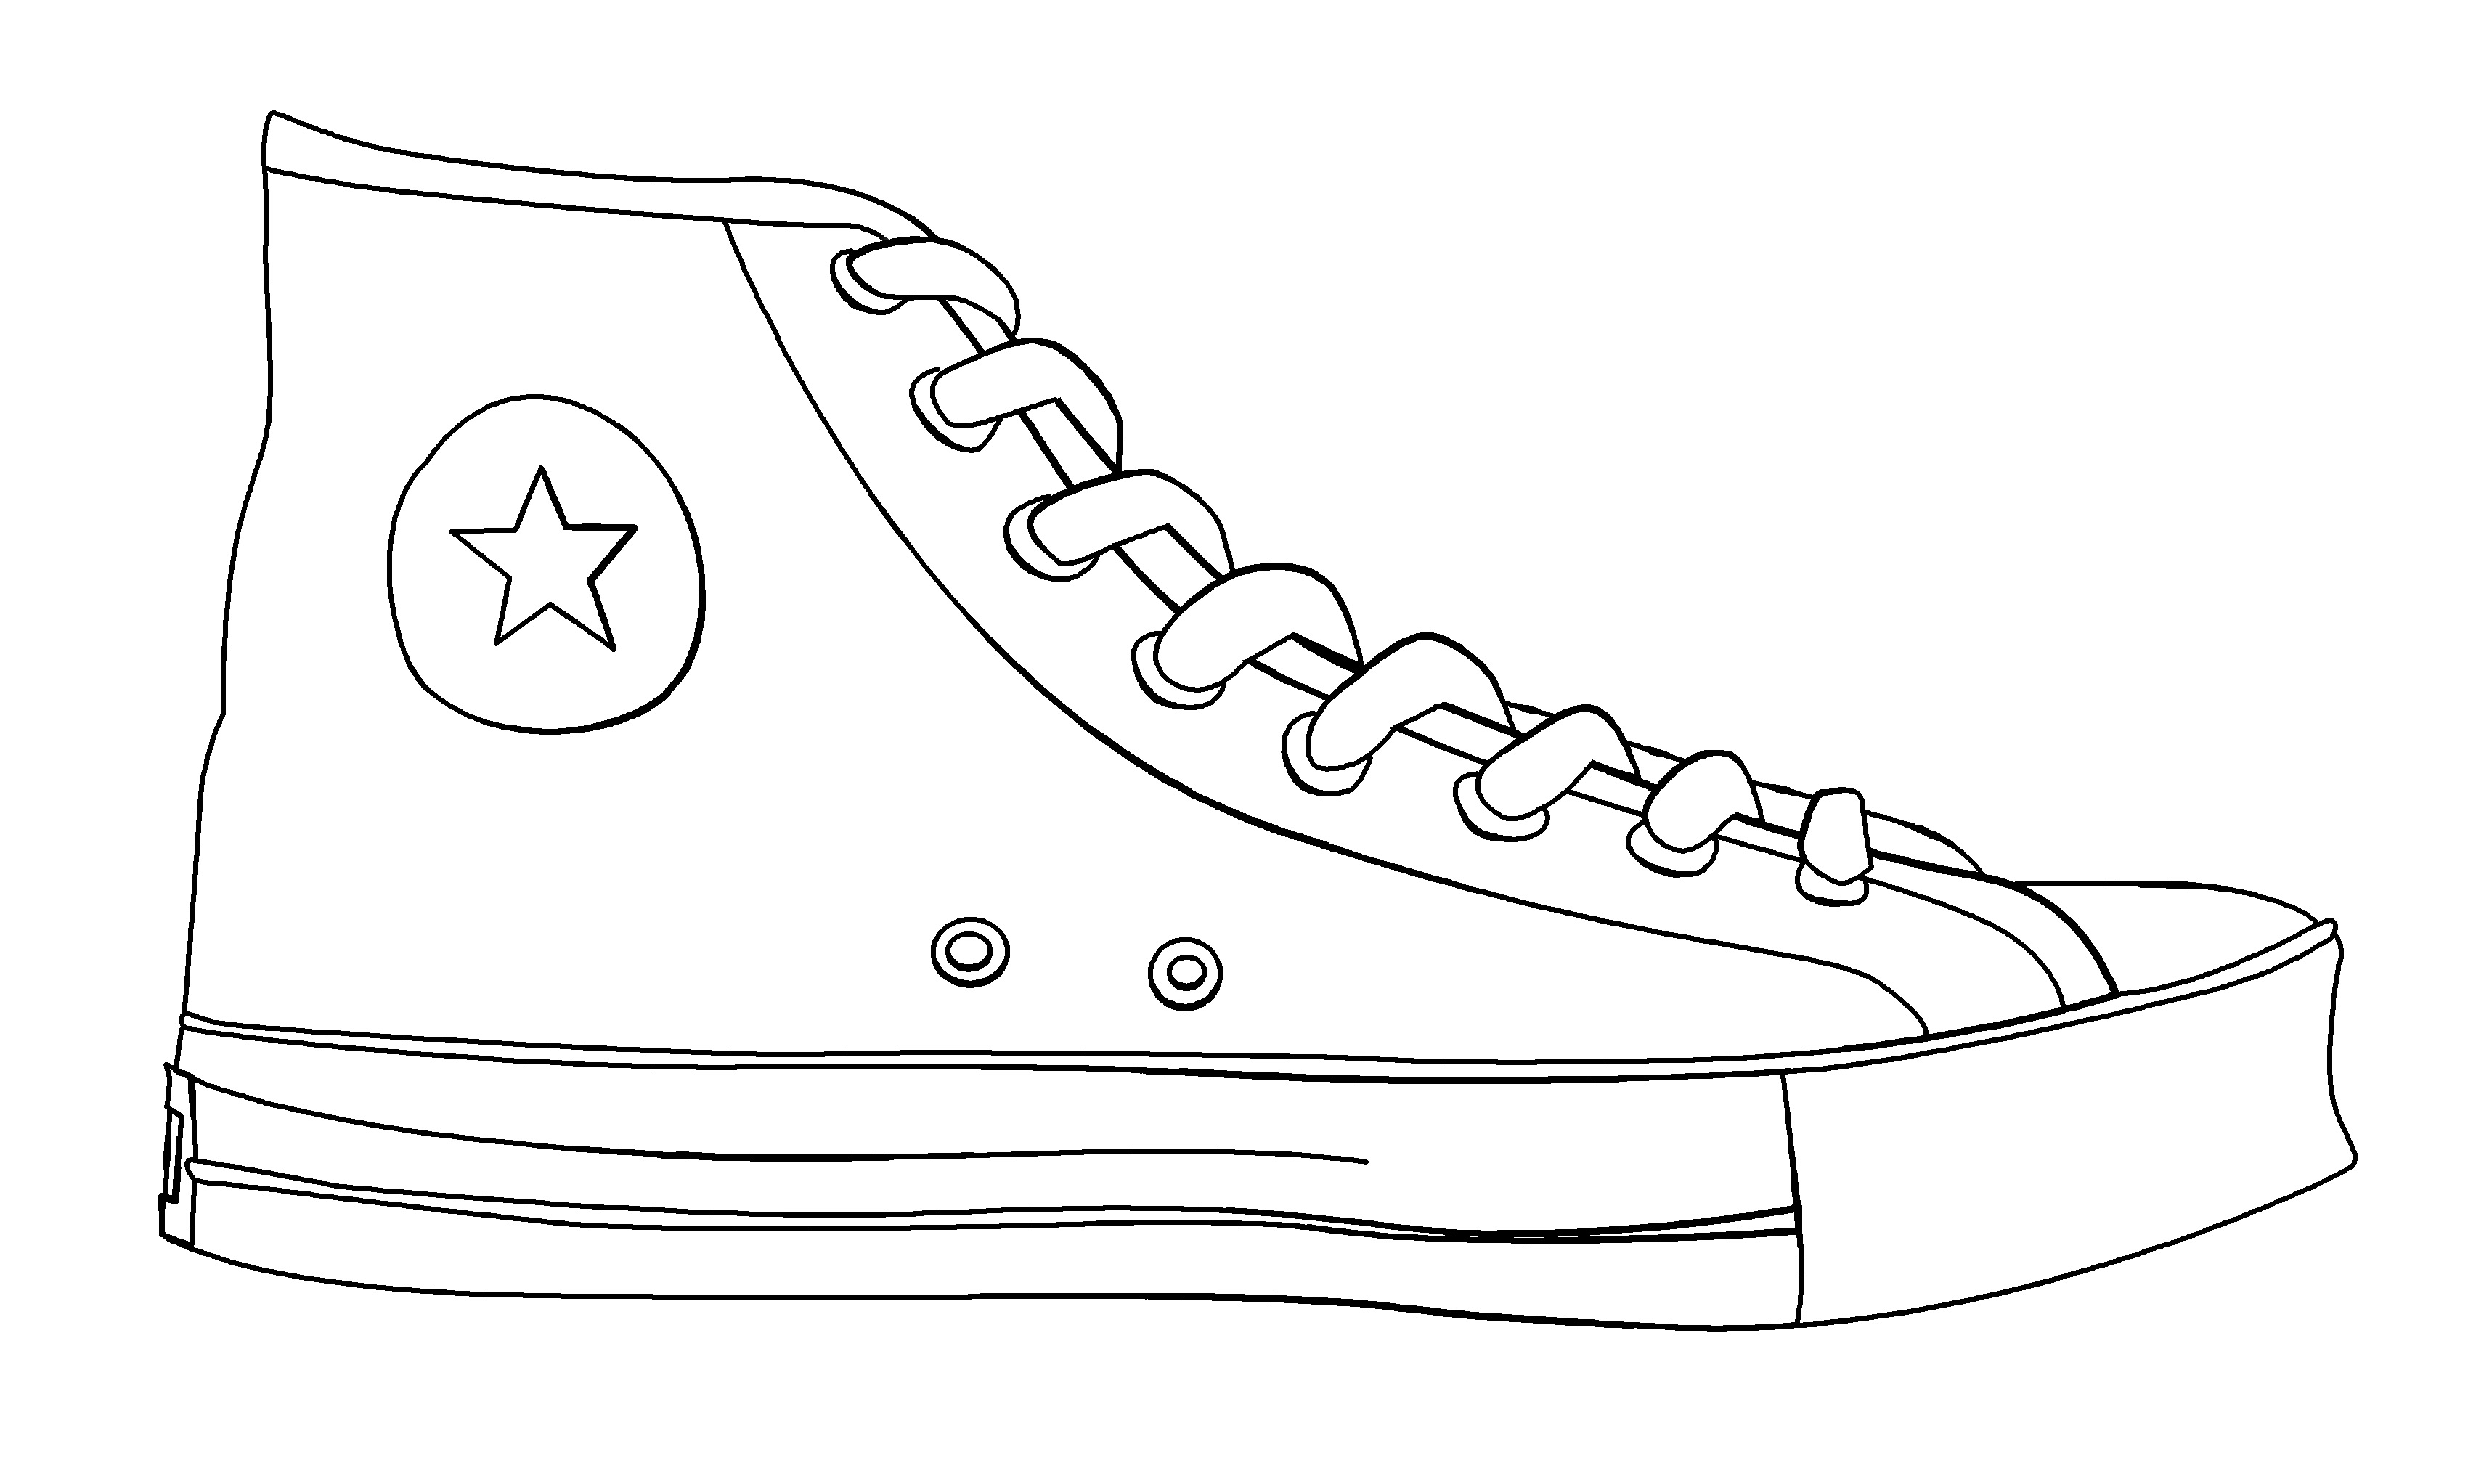 drawing of shoes image how to draw a shoe really easy drawing tutorial shoes of drawing shoes image